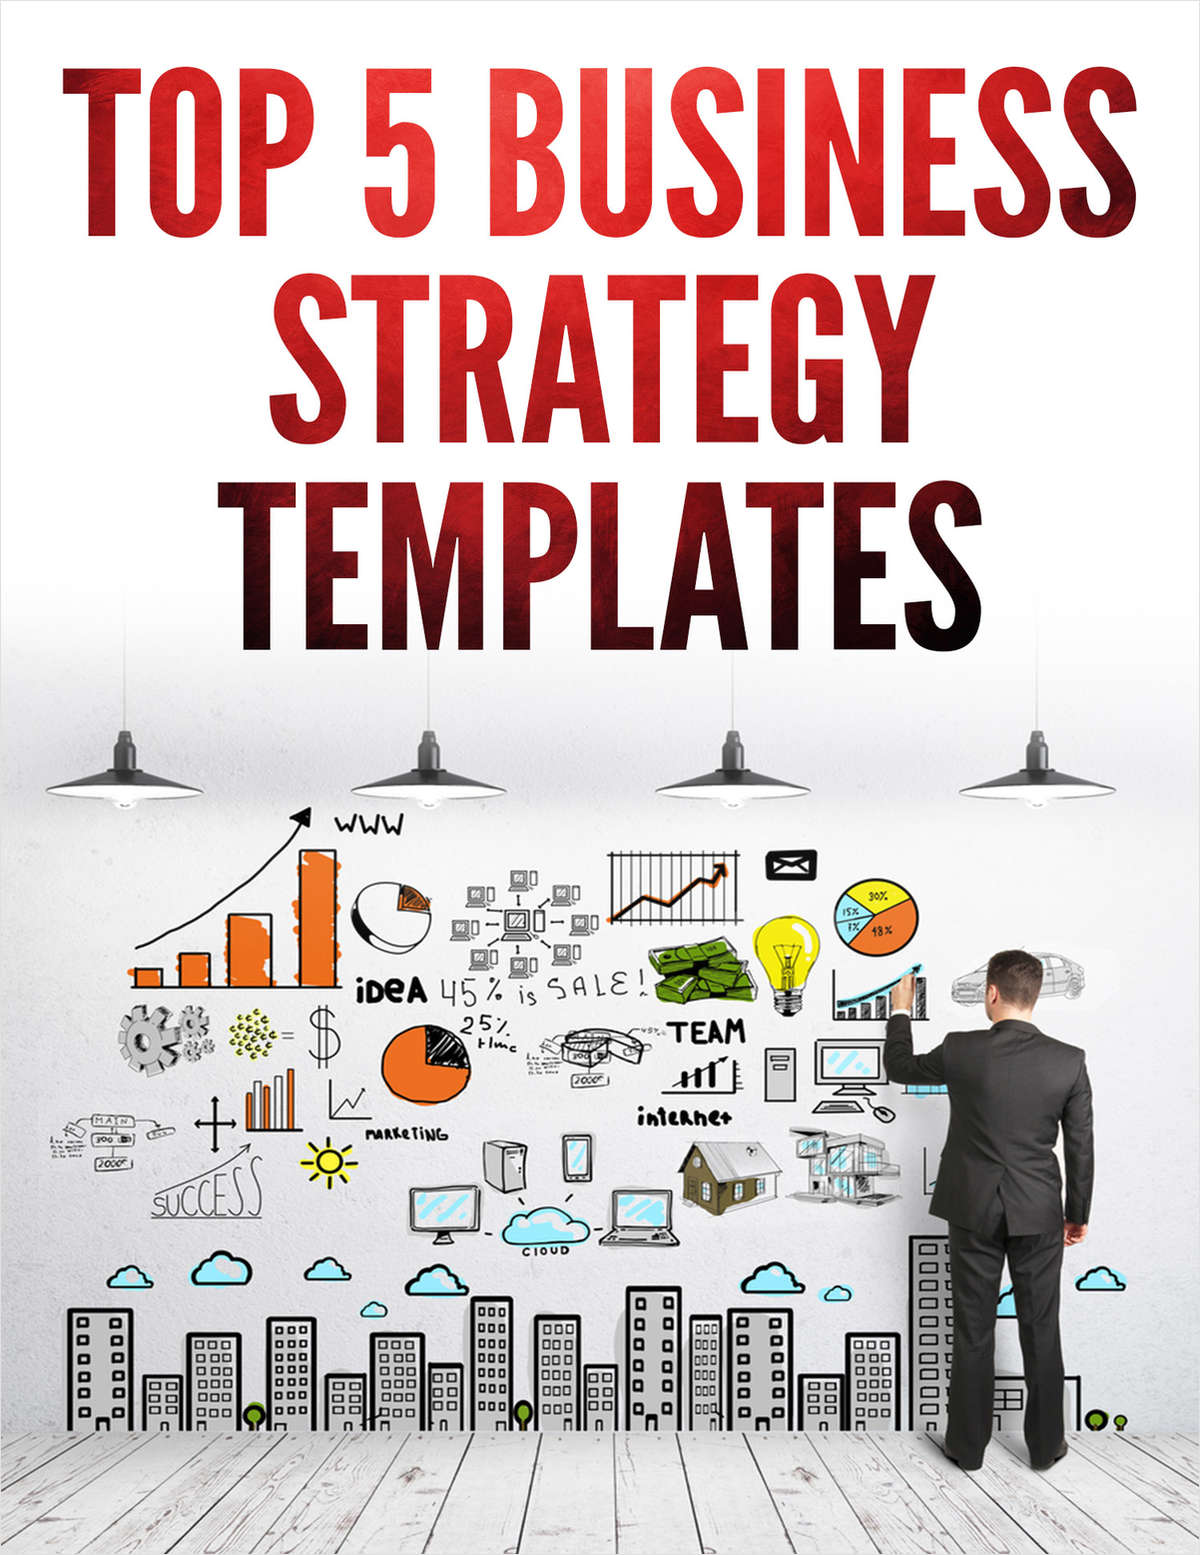 Top 5 Business Strategy Templates